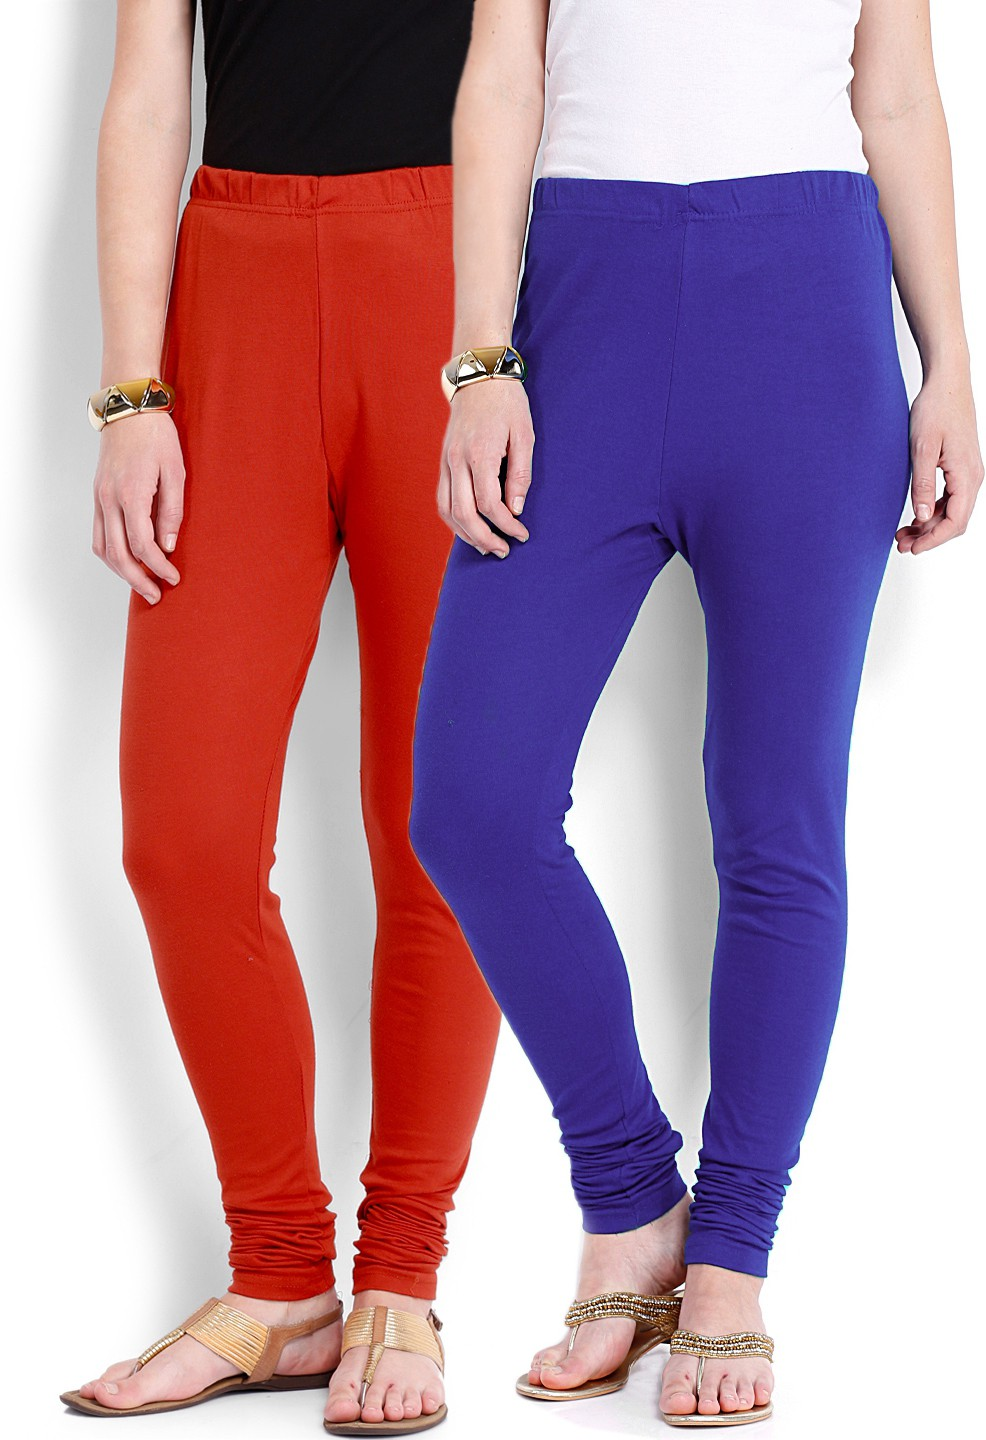 Ten on Ten Womens Red, Blue Leggings(Pack of 2)